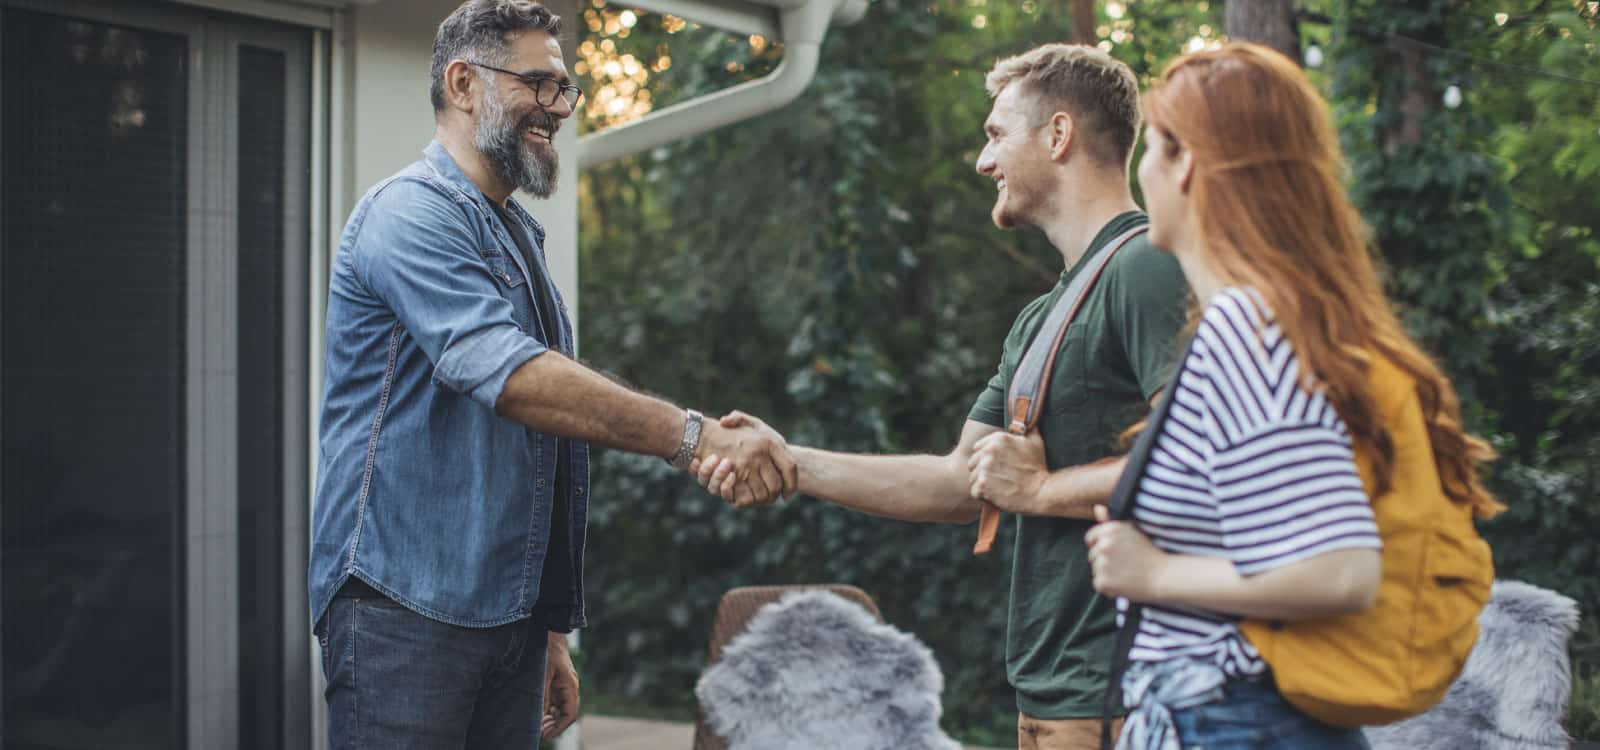 A bearded gentleman shakes the hand of a couple walking up to his home, indicating he pursued the small business idea of becoming a vacation rental host